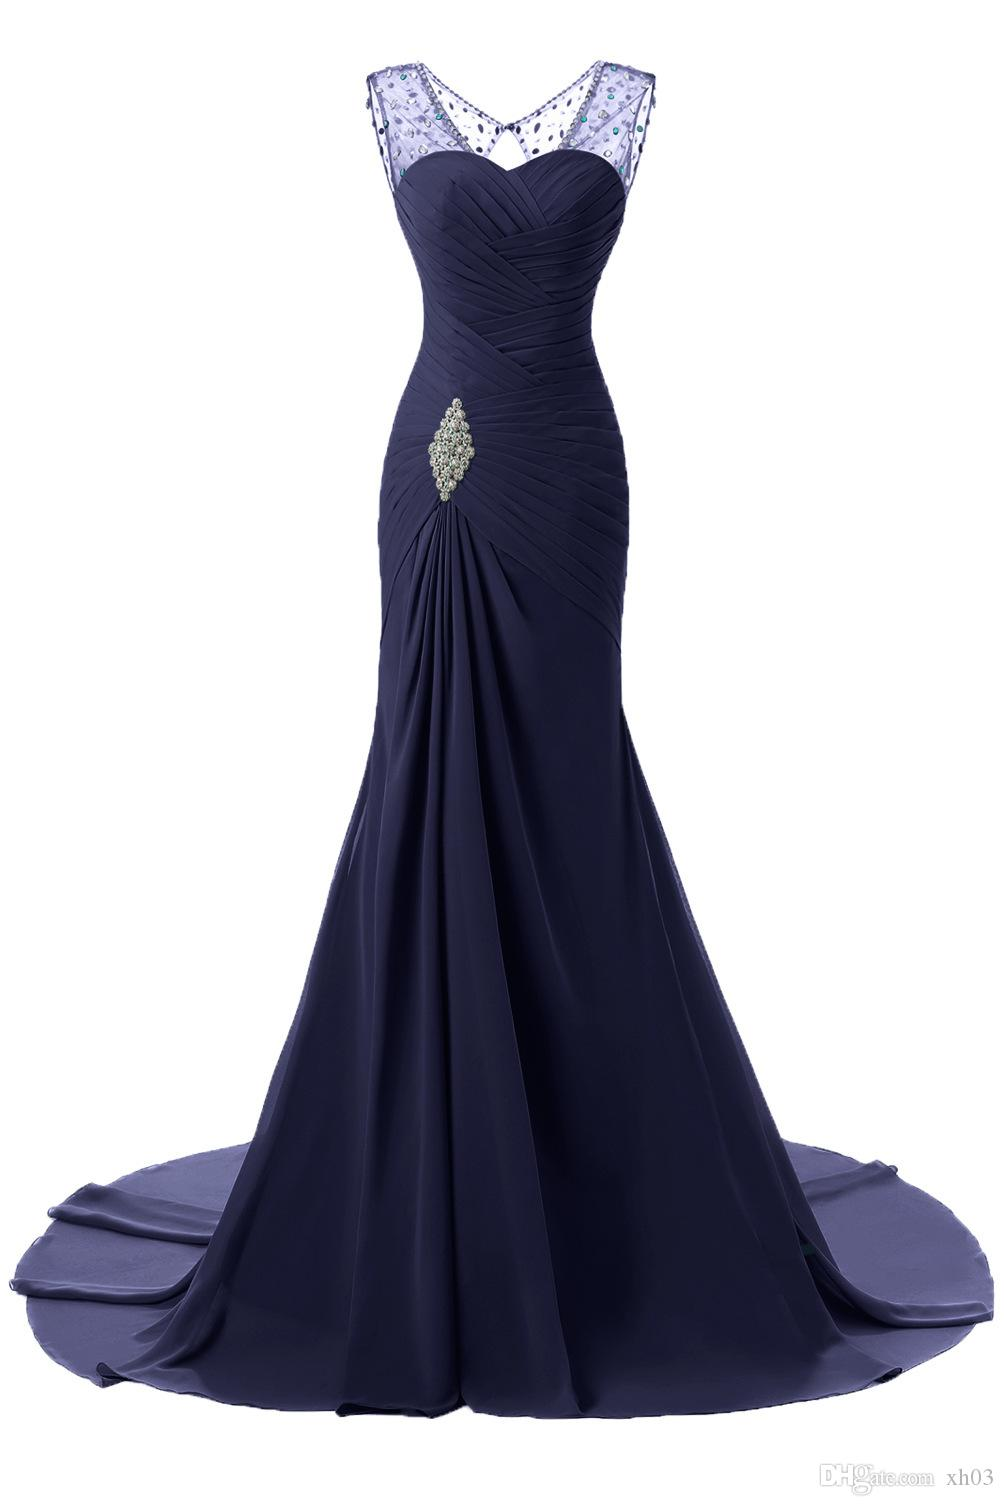 In Stock V Neck Long Mermaid Formal Evening Dresses Sheath Bodice Lace Crystal Beading Prom Gown Robe De Soiree